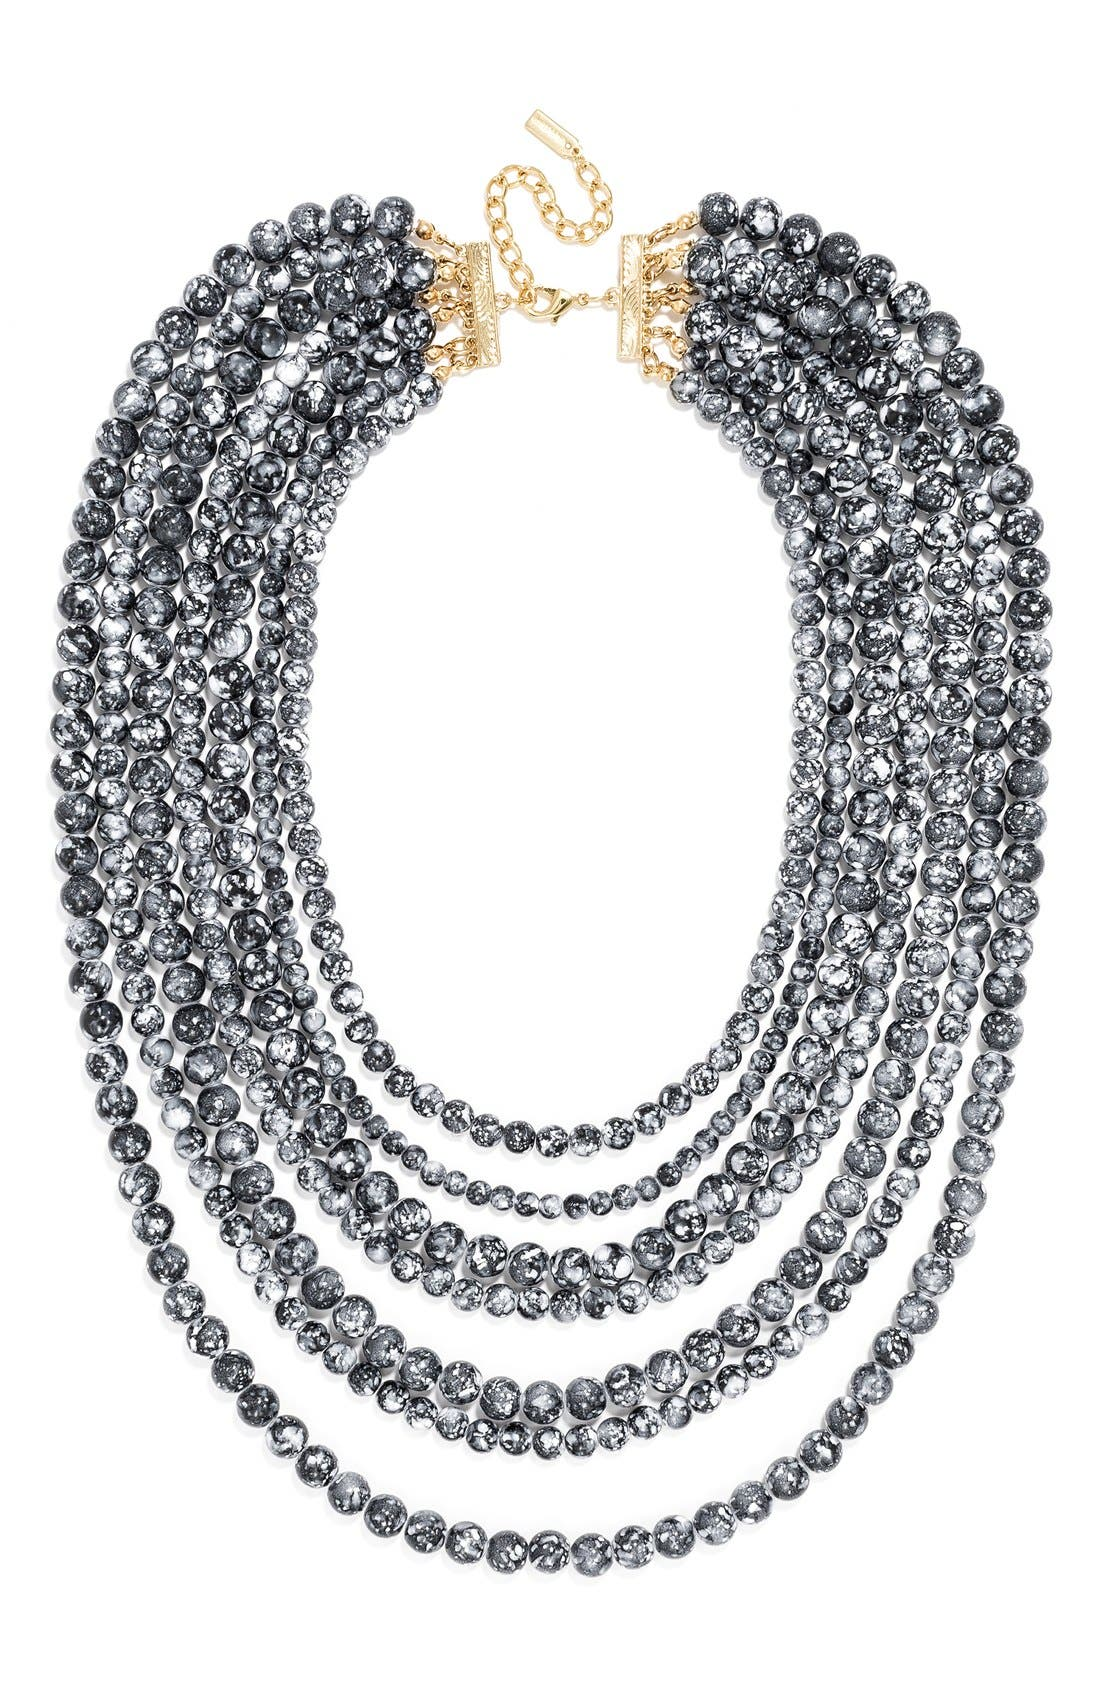 'Bold' Multistrand Beaded Statement Necklace,                             Main thumbnail 1, color,                             Black